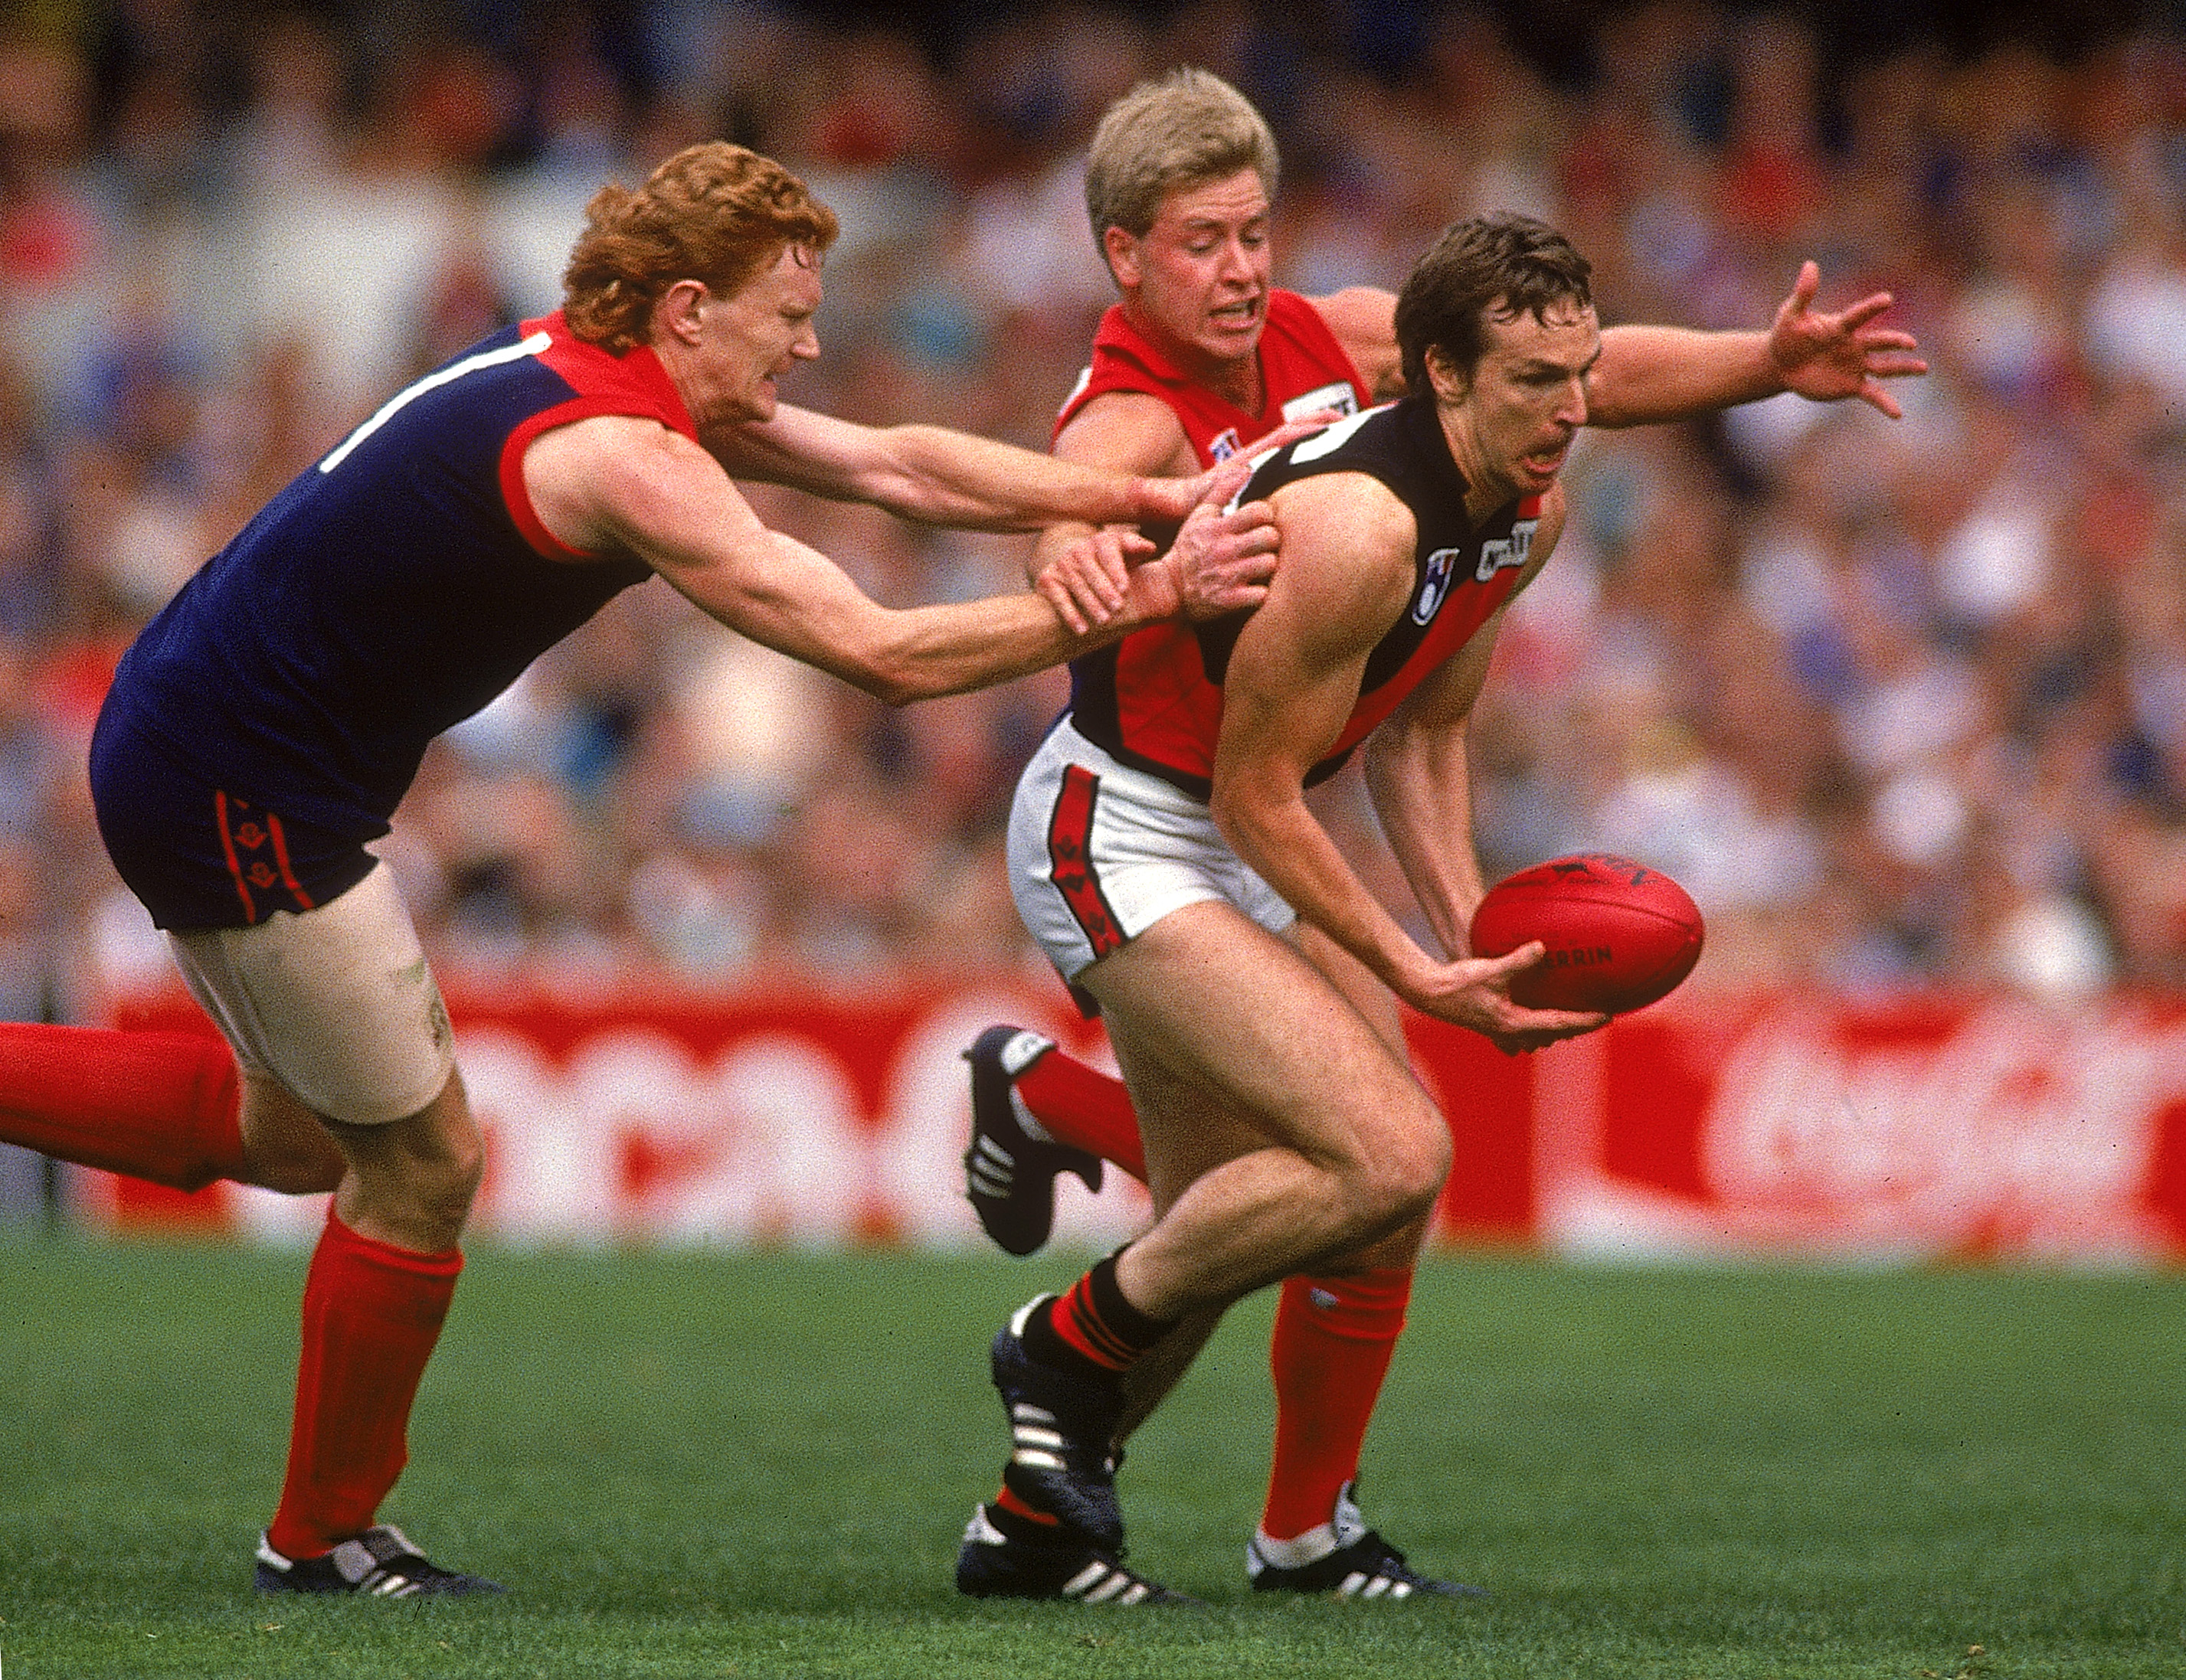 Daniher playing